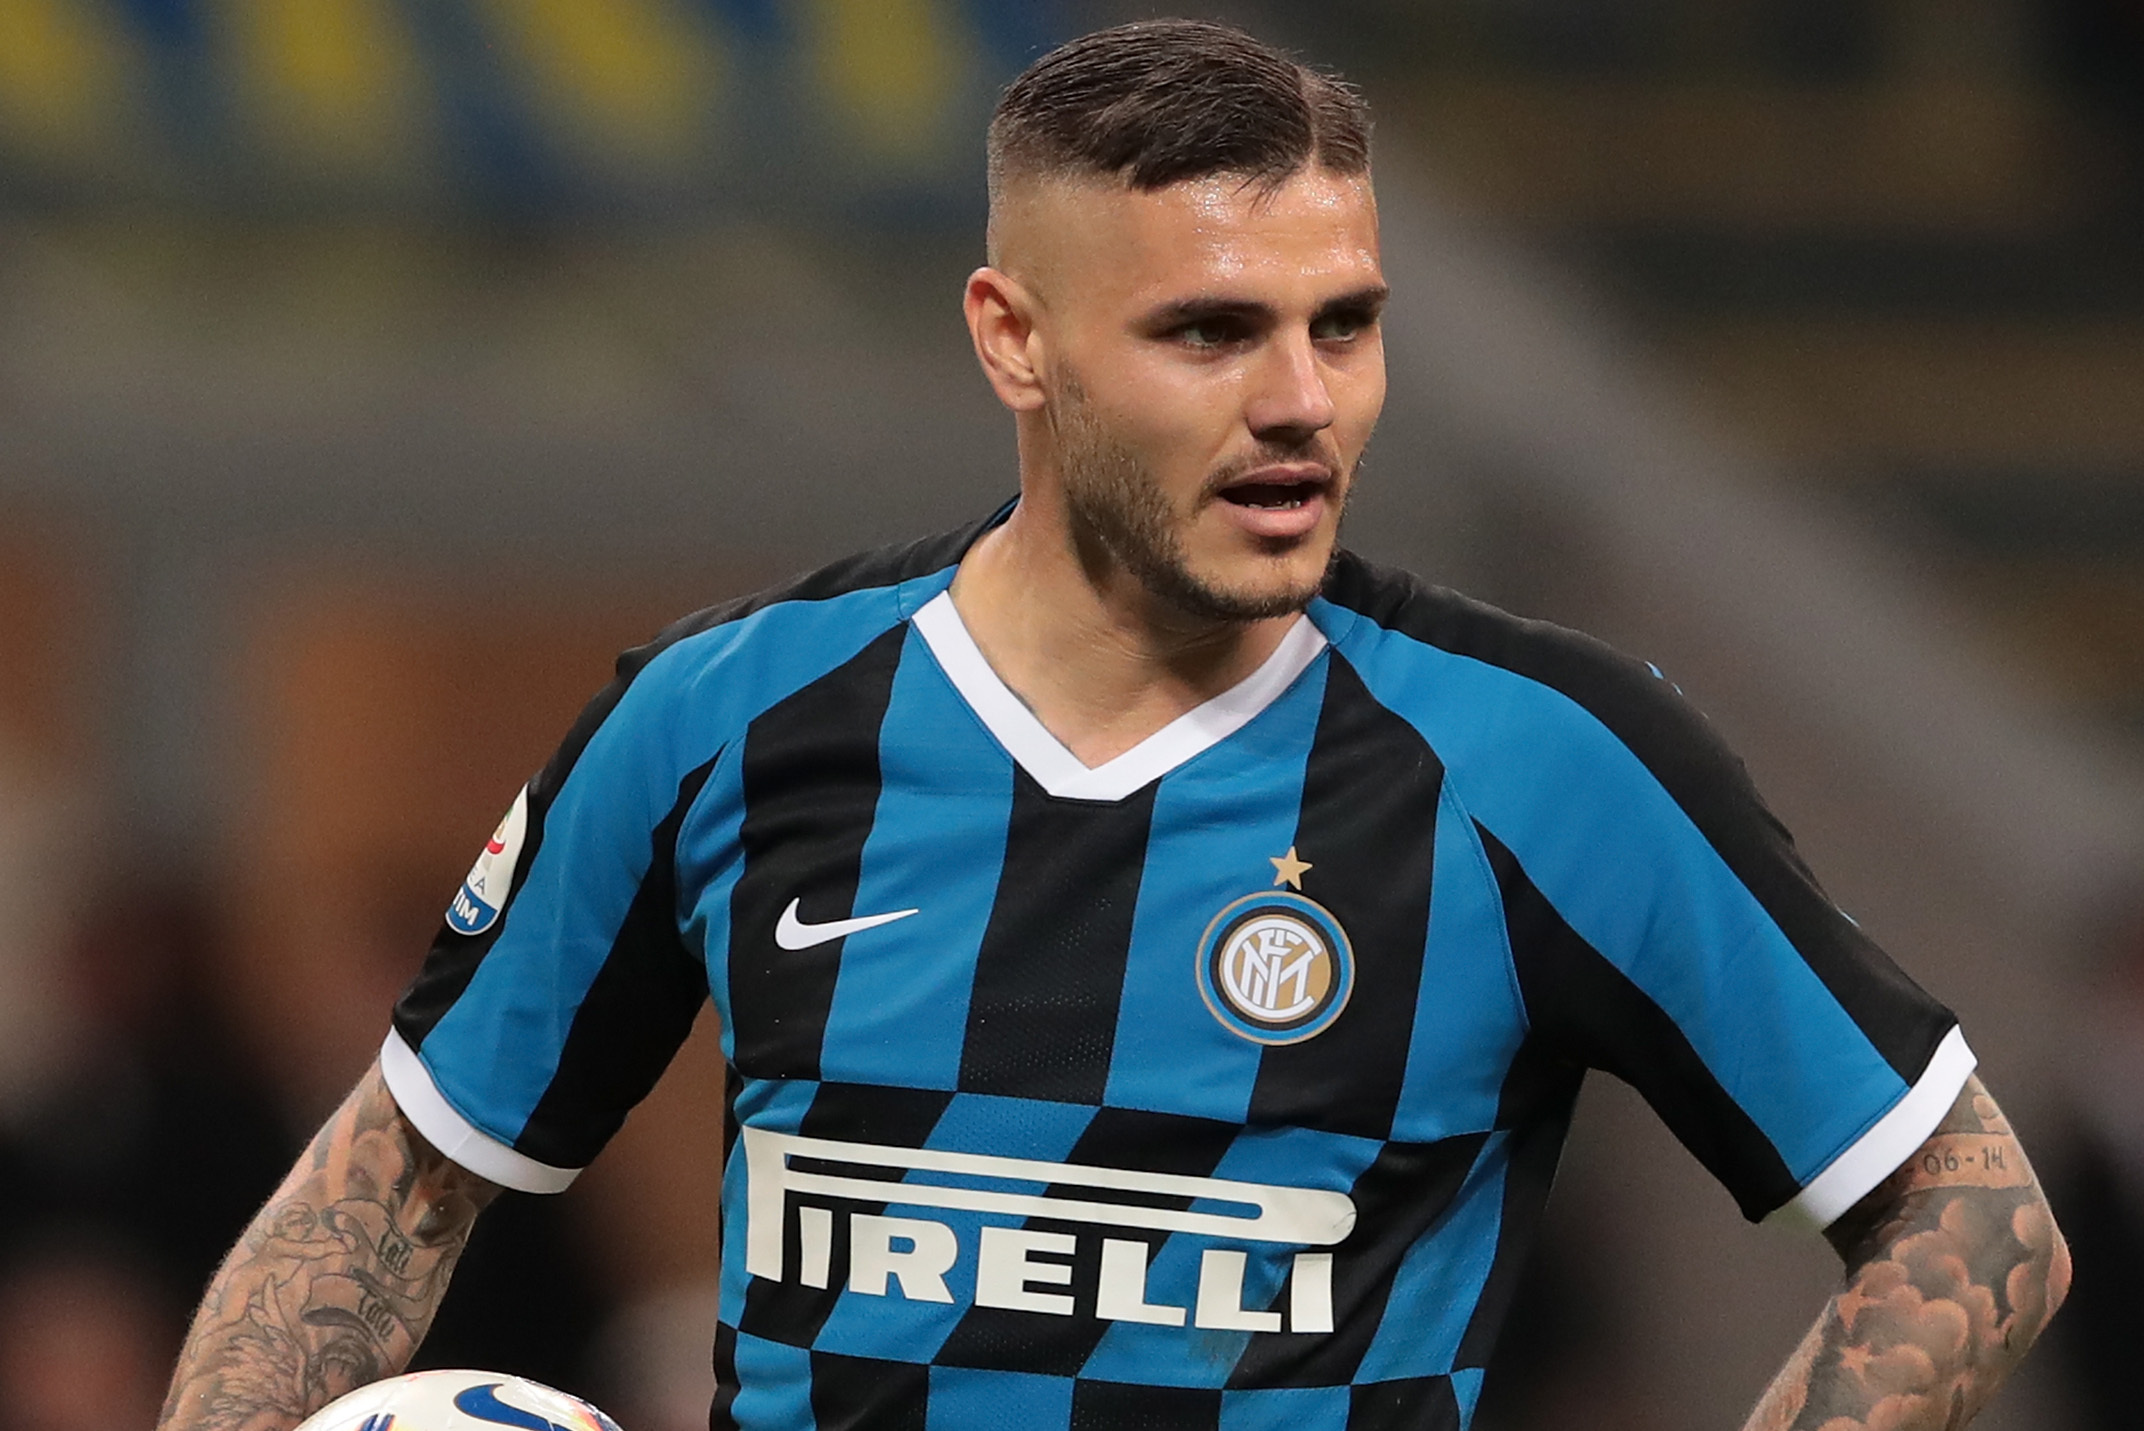 Mauro Icardi Joins Psg From Inter On Loan With Option To Buy Bleacher Report Latest News Videos And Highlights